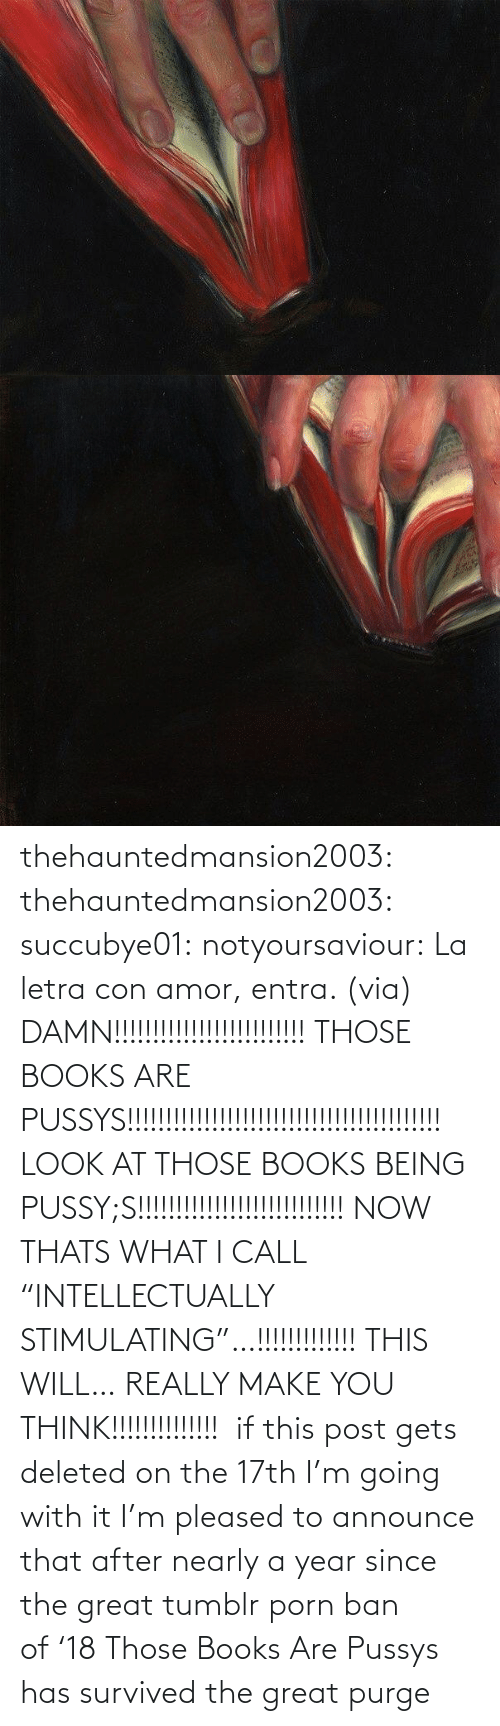 """Make You: thehauntedmansion2003: thehauntedmansion2003:  succubye01:  notyoursaviour:  La letra con amor, entra. (via)  DAMN!!!!!!!!!!!!!!!!!!!!!!!!! THOSE BOOKS ARE PUSSYS!!!!!!!!!!!!!!!!!!!!!!!!!!!!!!!!!!!!!!!!! LOOK AT THOSE BOOKS BEING PUSSY;S!!!!!!!!!!!!!!!!!!!!!!!!!!! NOW THATS WHAT I CALL """"INTELLECTUALLY STIMULATING""""…!!!!!!!!!!!!! THIS WILL… REALLY MAKE YOU THINK!!!!!!!!!!!!!!  if this post gets deleted on the 17th I'm going with it  I'm pleased to announce that after nearly a year since the great tumblr porn ban of'18 Those Books Are Pussys has survived the great purge"""